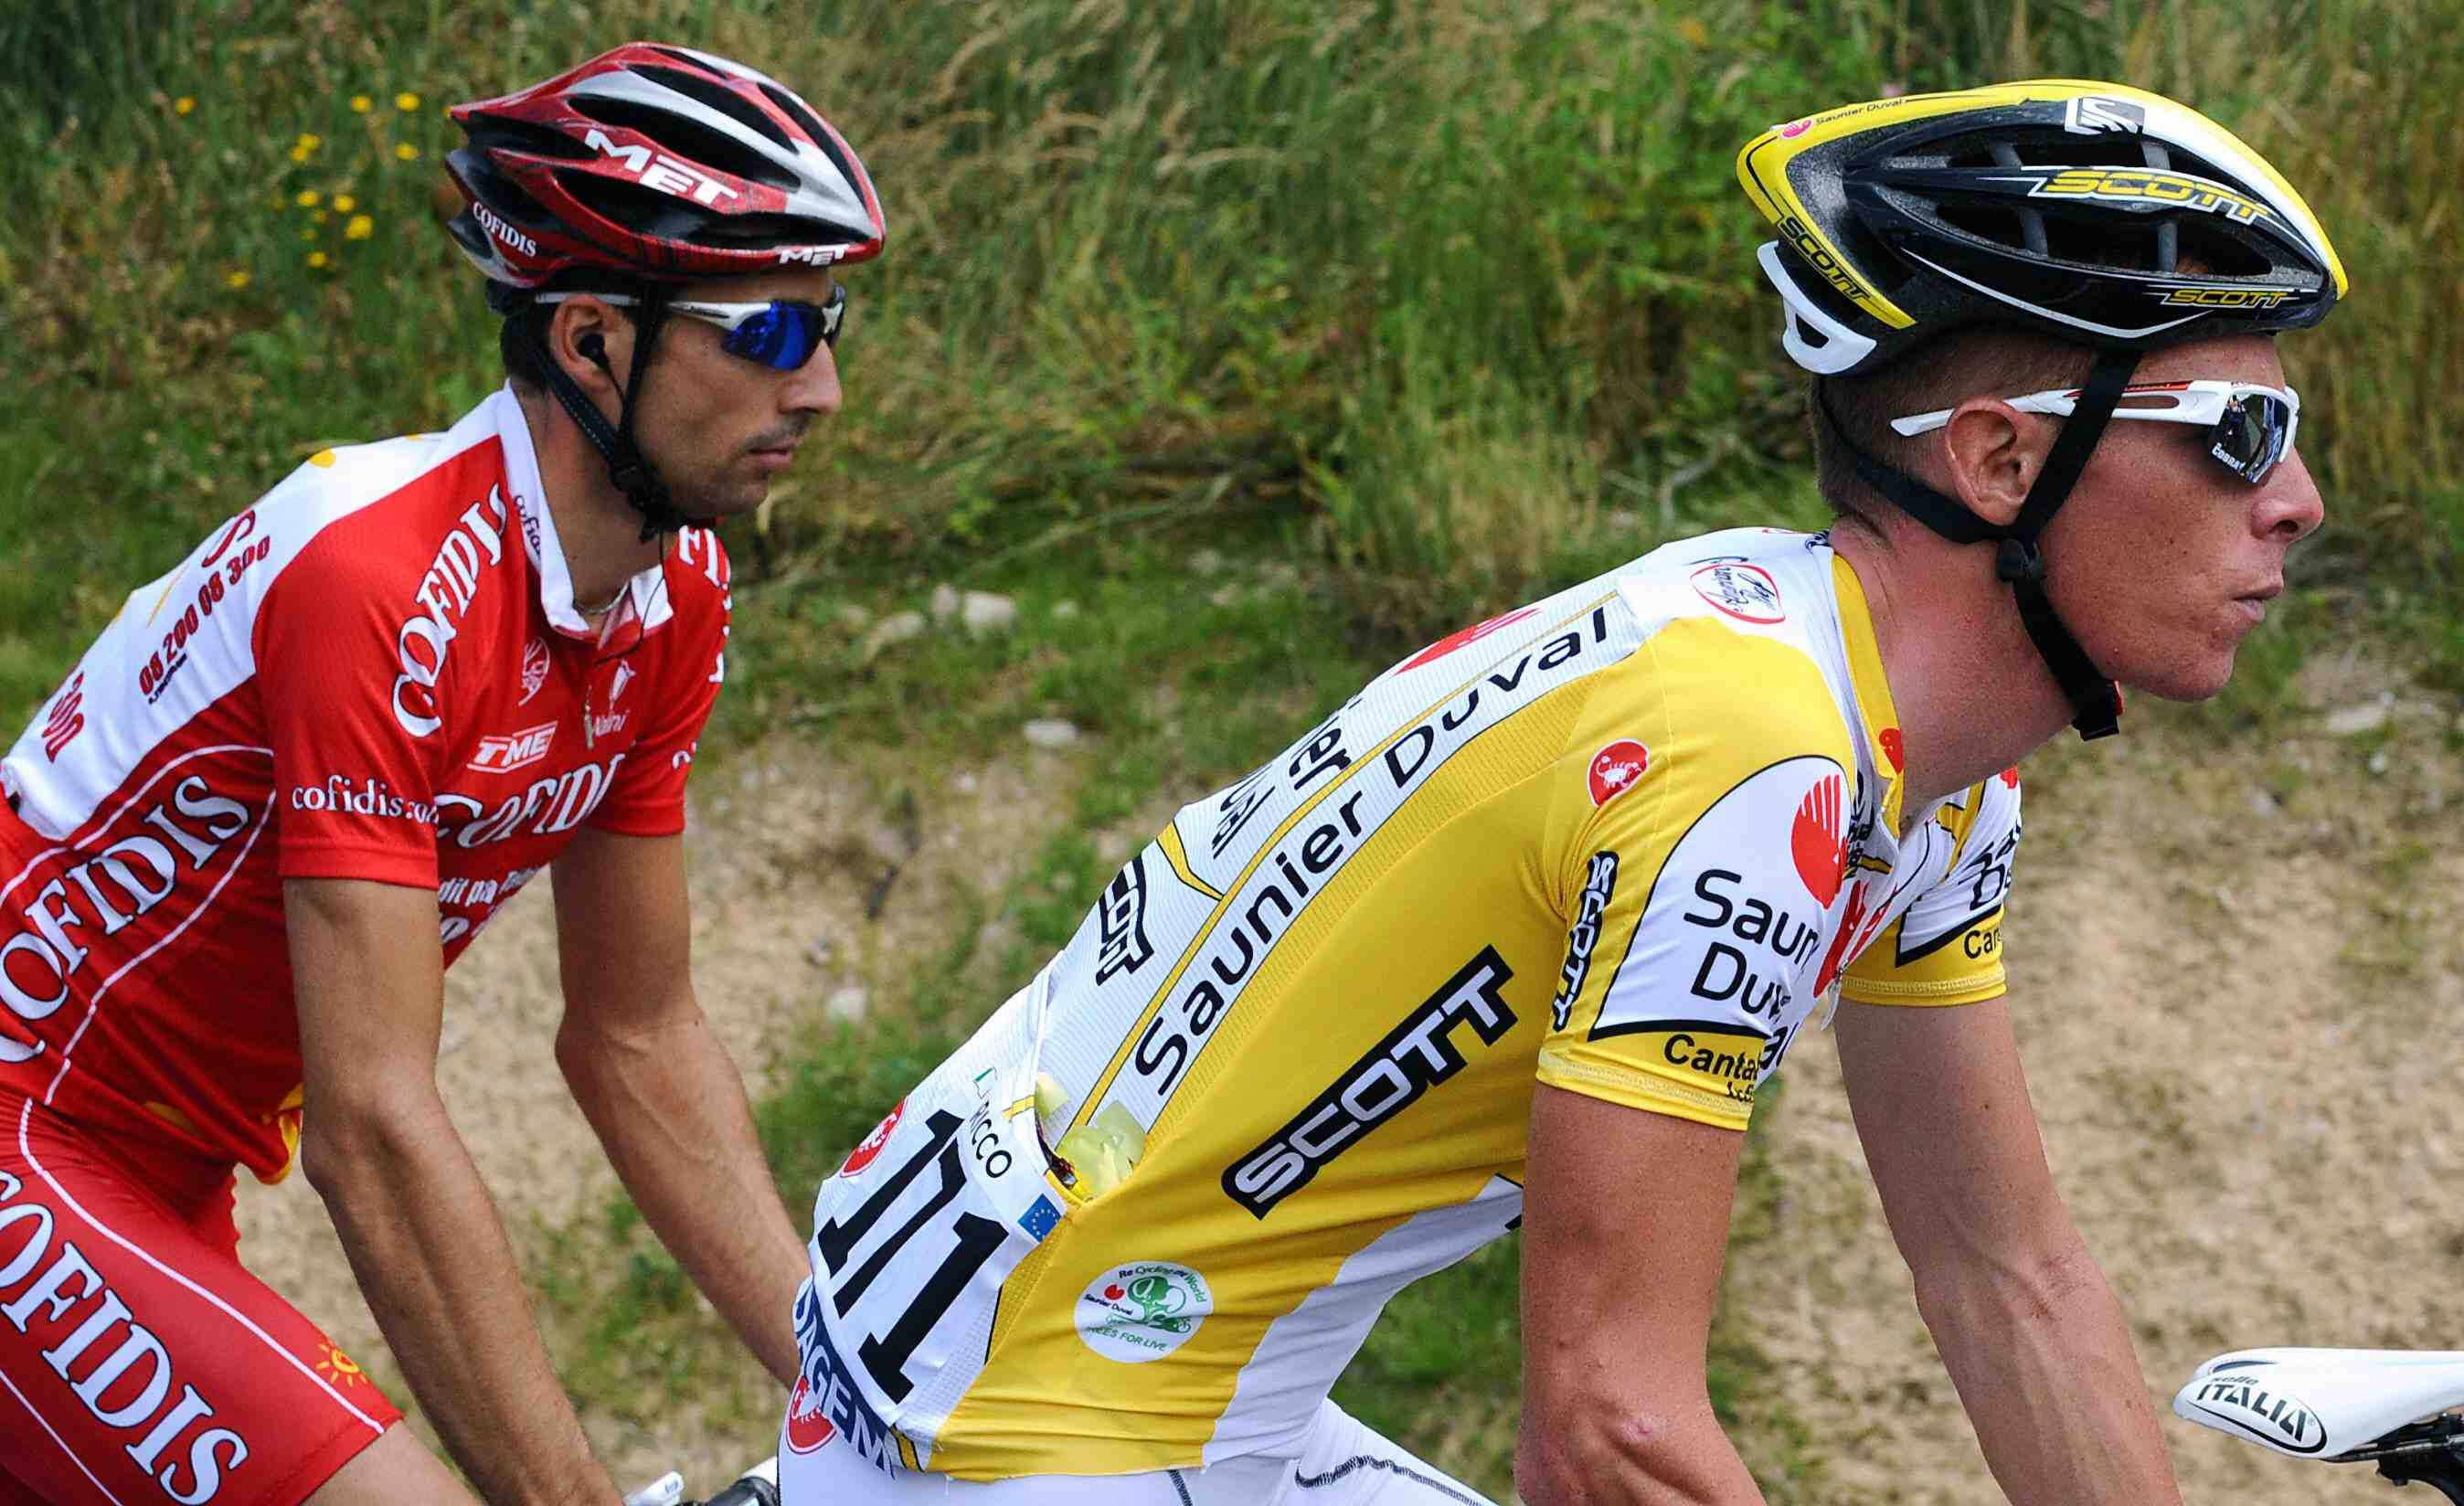 Frenchman David Moncoutie (L) may take up where Riccardo Ricco left off, with a stage win this weekend.